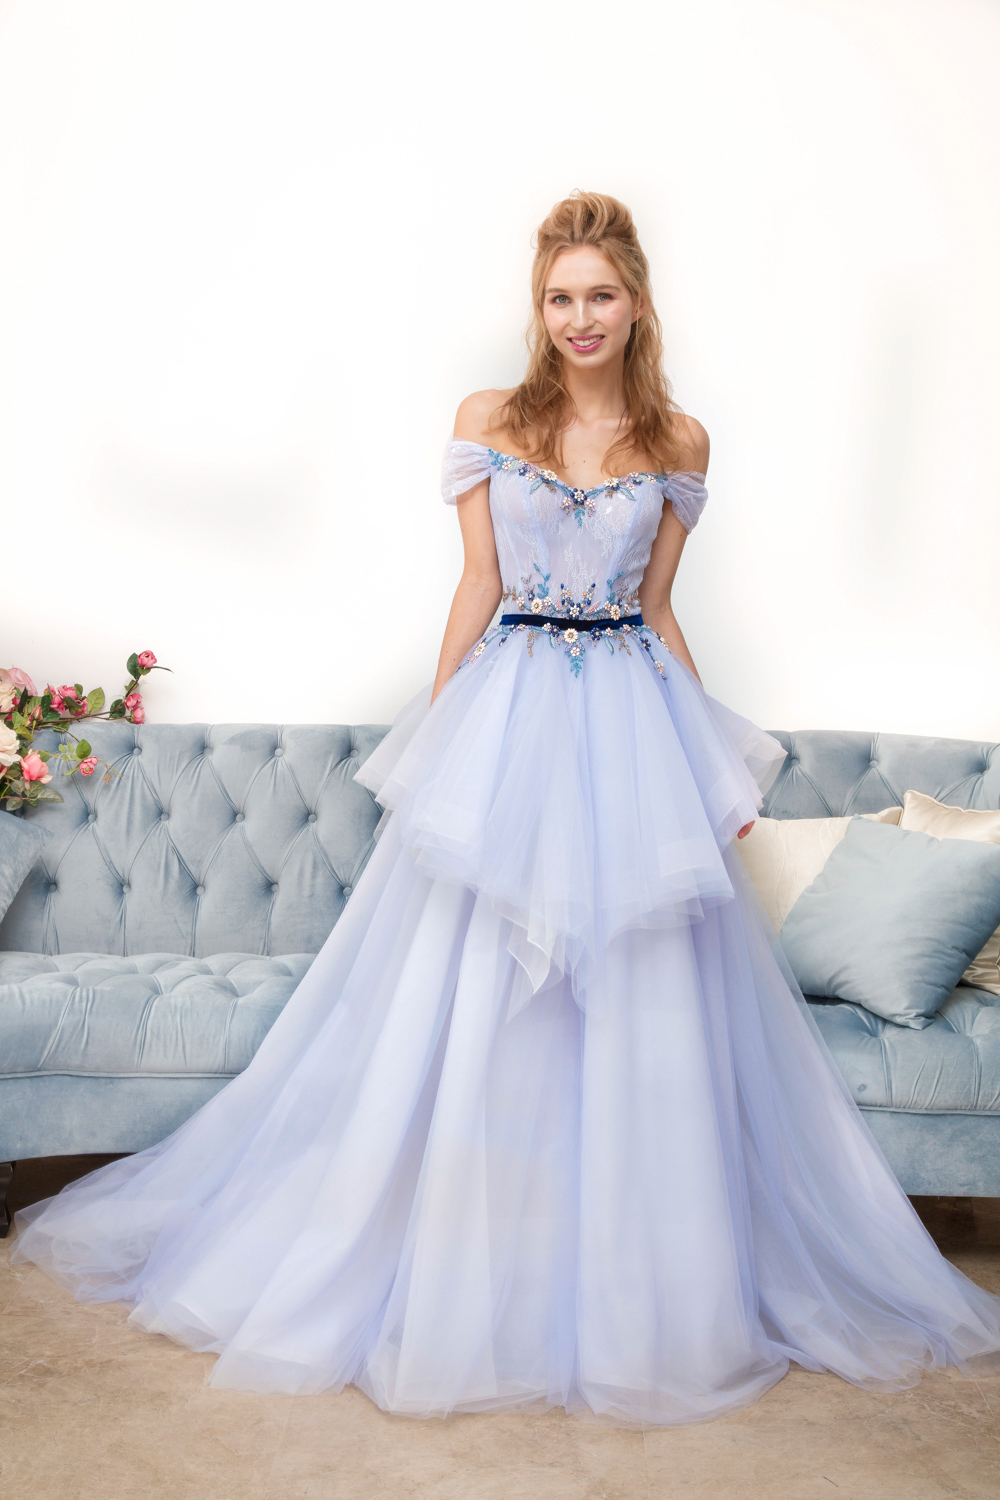 Off the shoulder evening gown with blue velvet evening gown by CCM Wedding